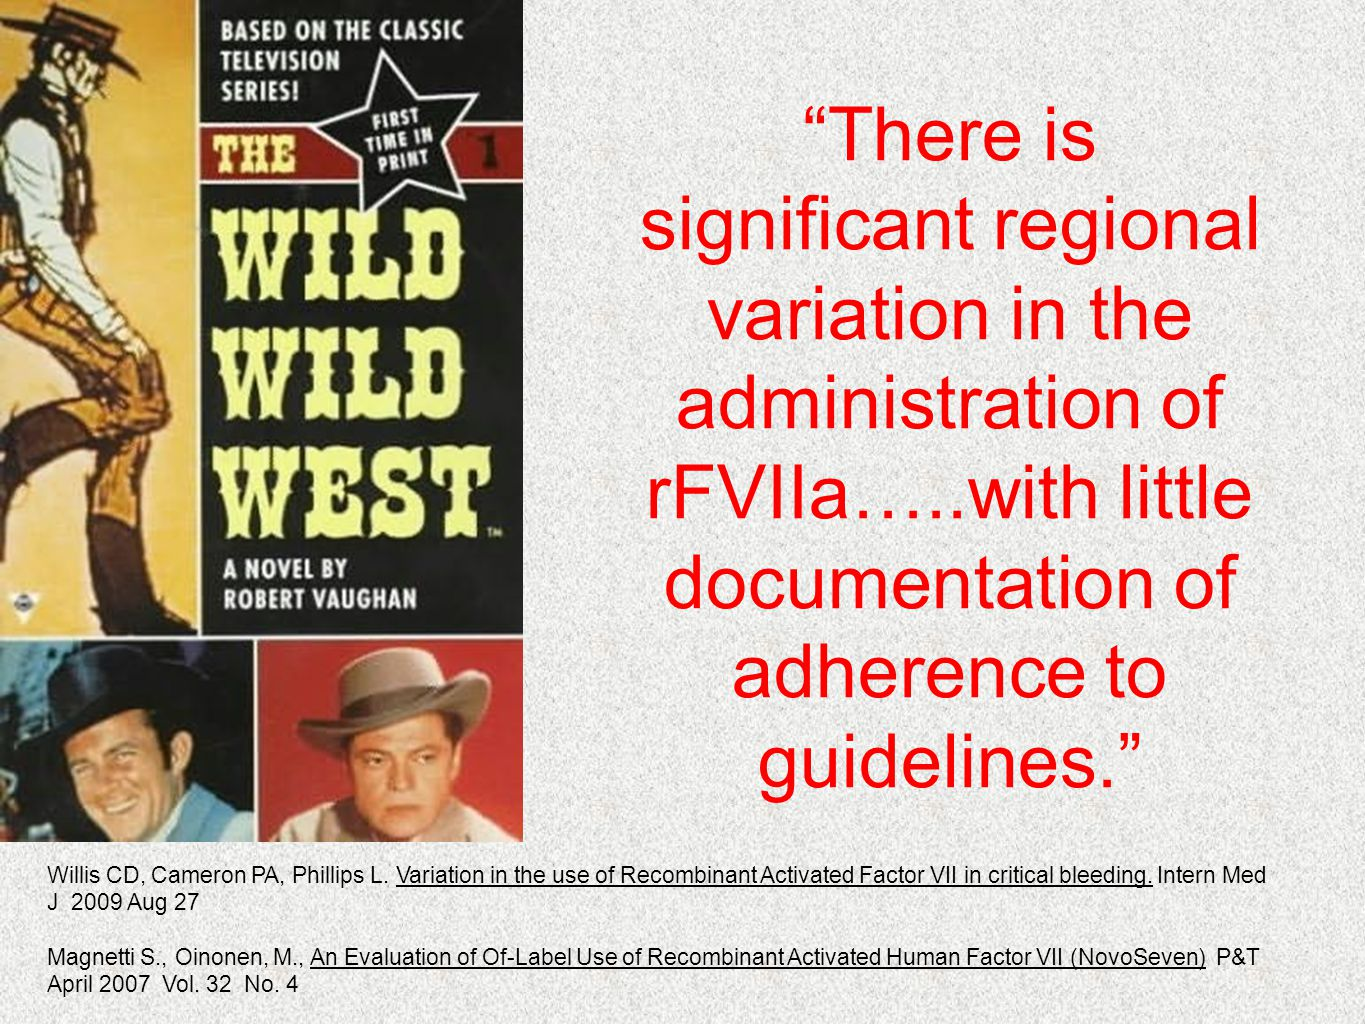 There is significant regional variation in the administration of rFVIIa…..with little documentation of adherence to guidelines.